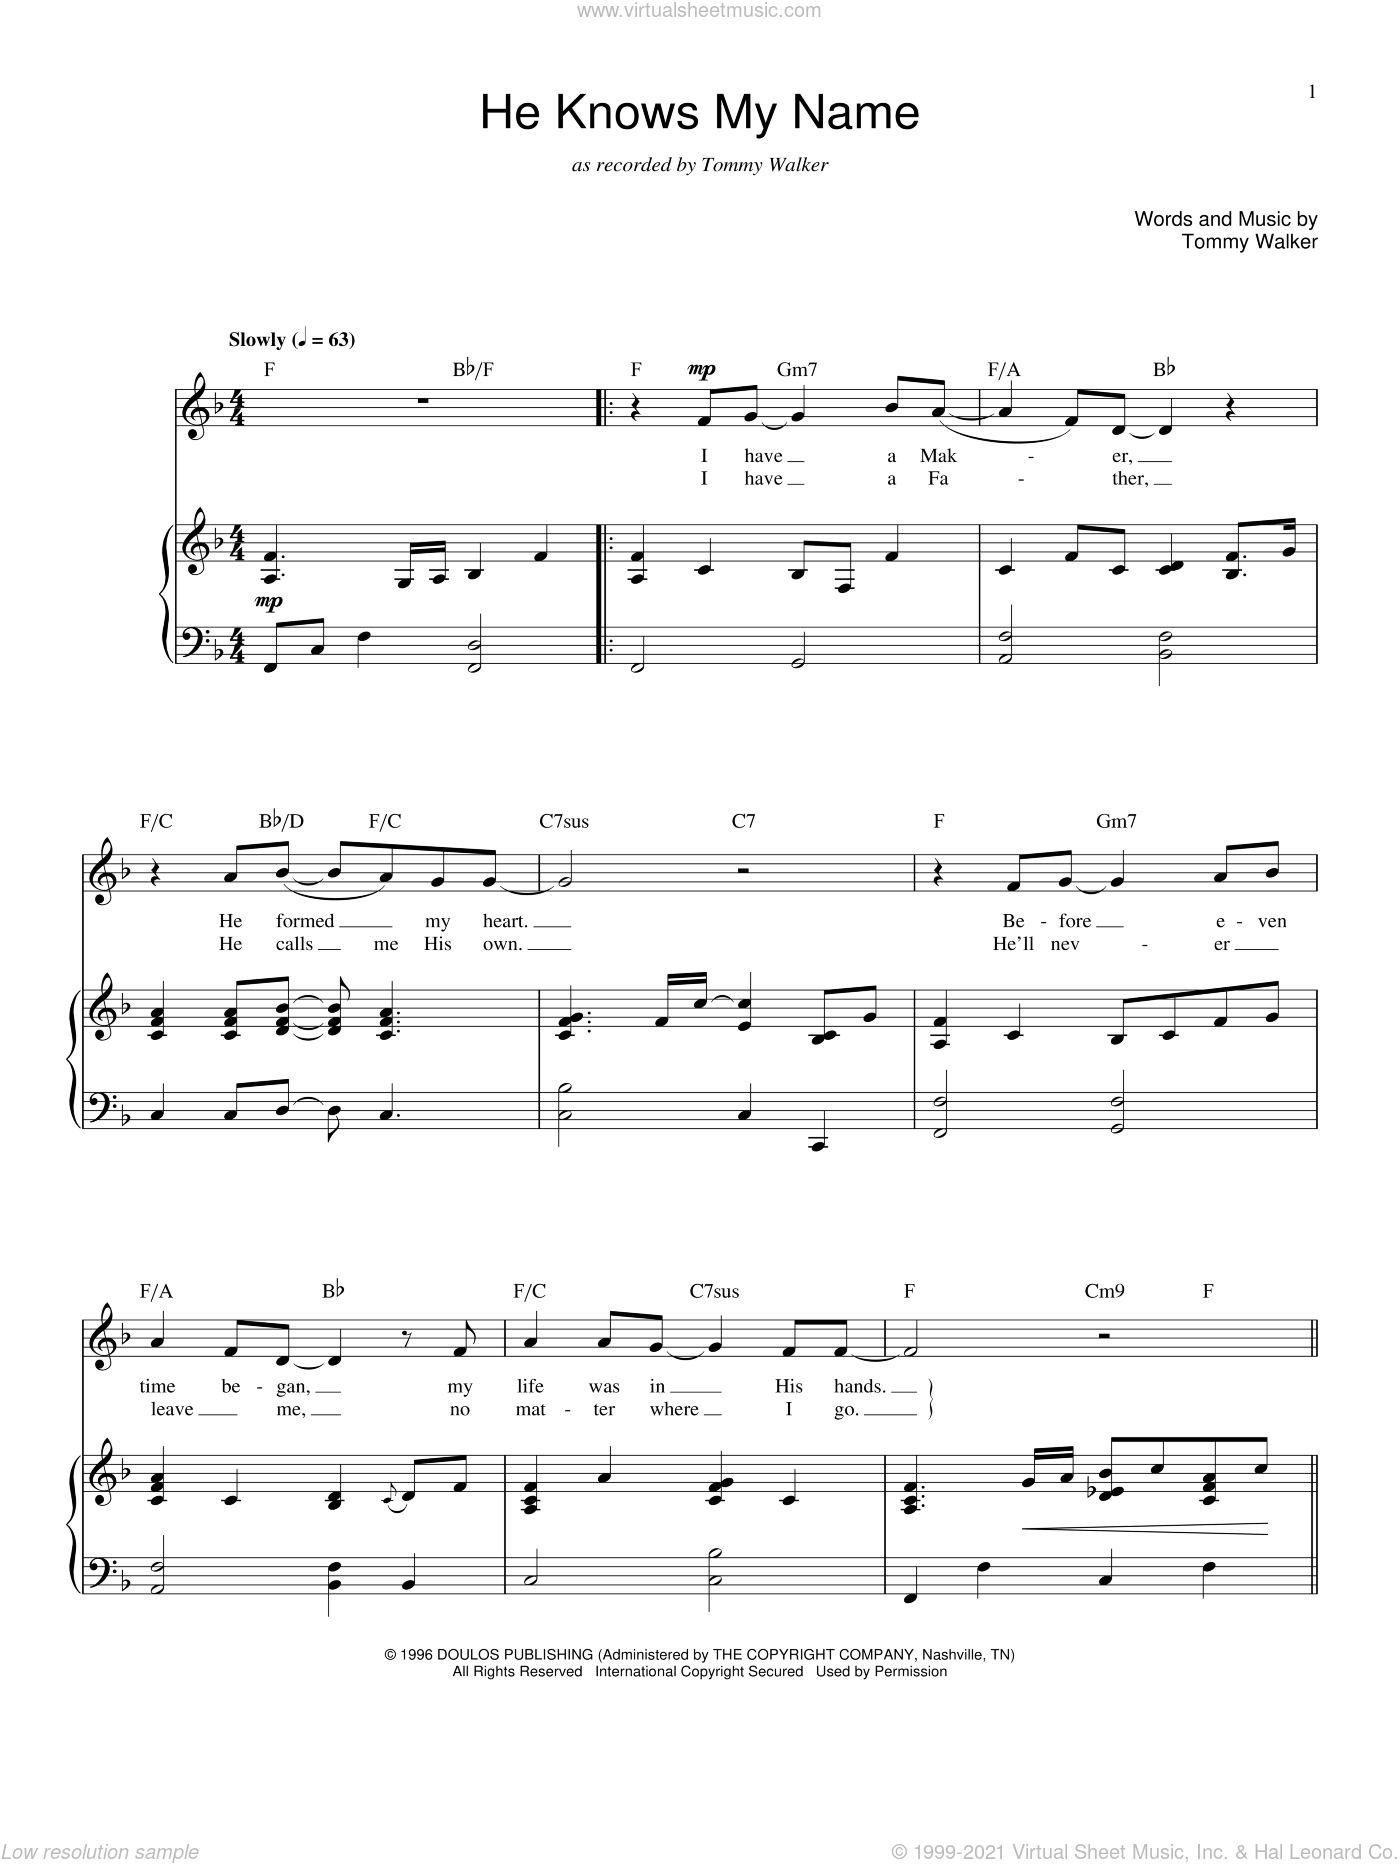 He Knows My Name sheet music for voice and piano by Tommy Walker, intermediate skill level